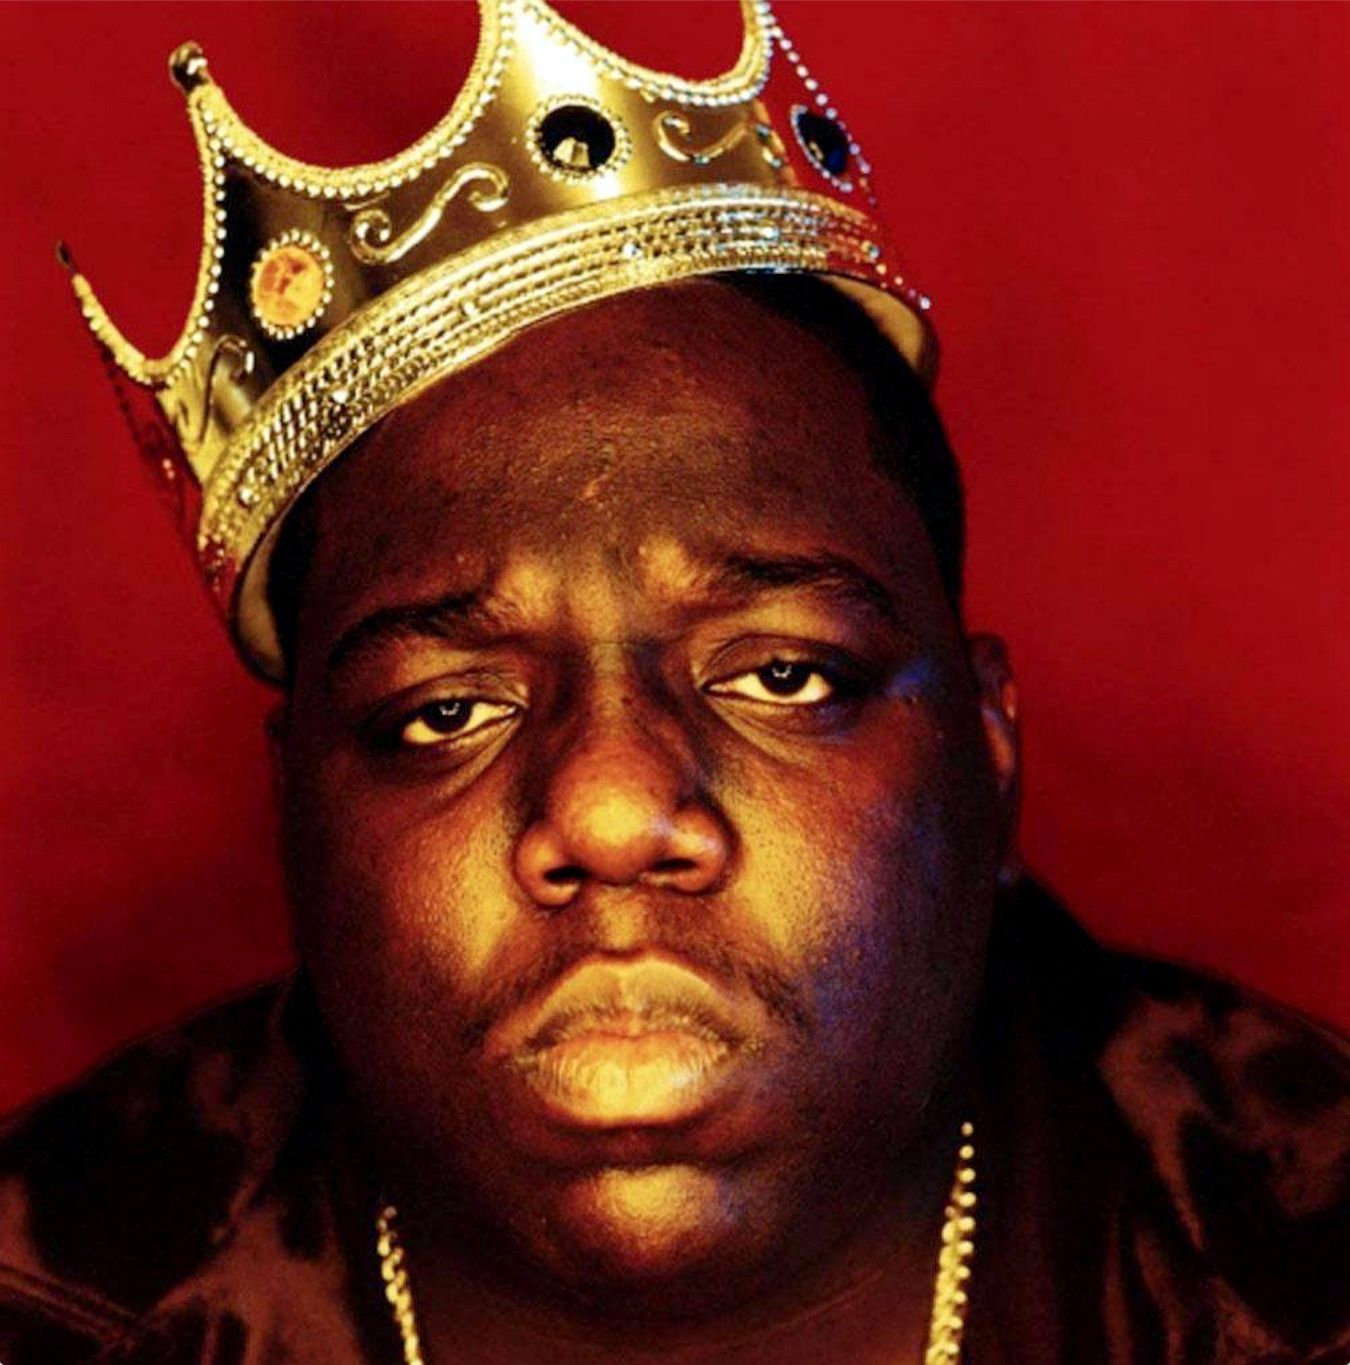 King of New York - The Notorious B.I.G. - Biggie Smalls ...